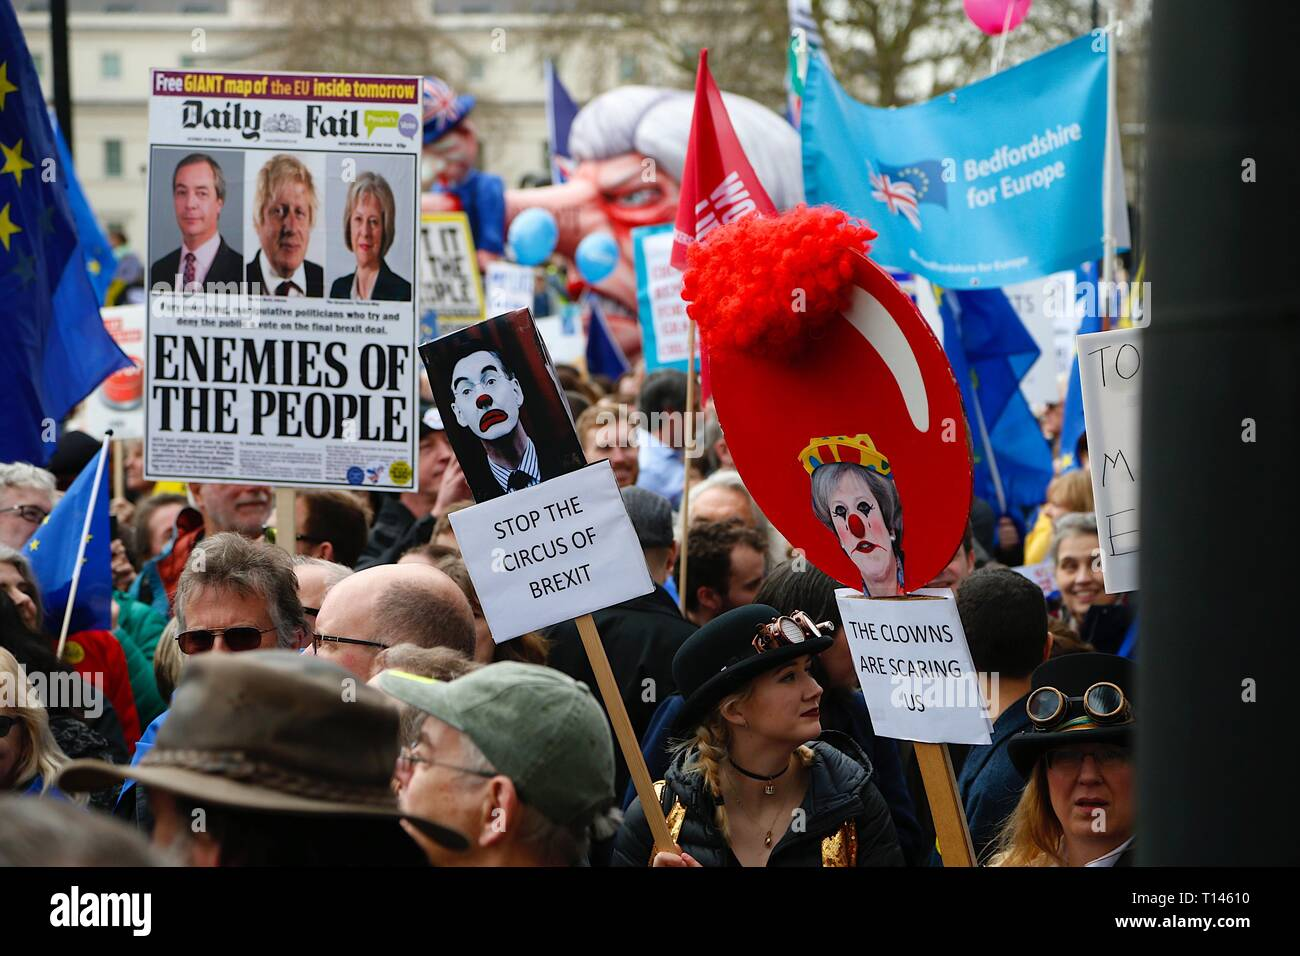 London, UK. 23 Mar, 2019. People's Vote March: Hundreds of thousands of pro-EU supporters attend a mass march to Westminster. People are expected to join the march from Park Lane to Parliament Square beginning at noon with speeches commencing at 2.45pm from all political party's. ©Paul Lawrenson 2019, Photo Credit: Paul Lawrenson/Alamy Live News Stock Photo